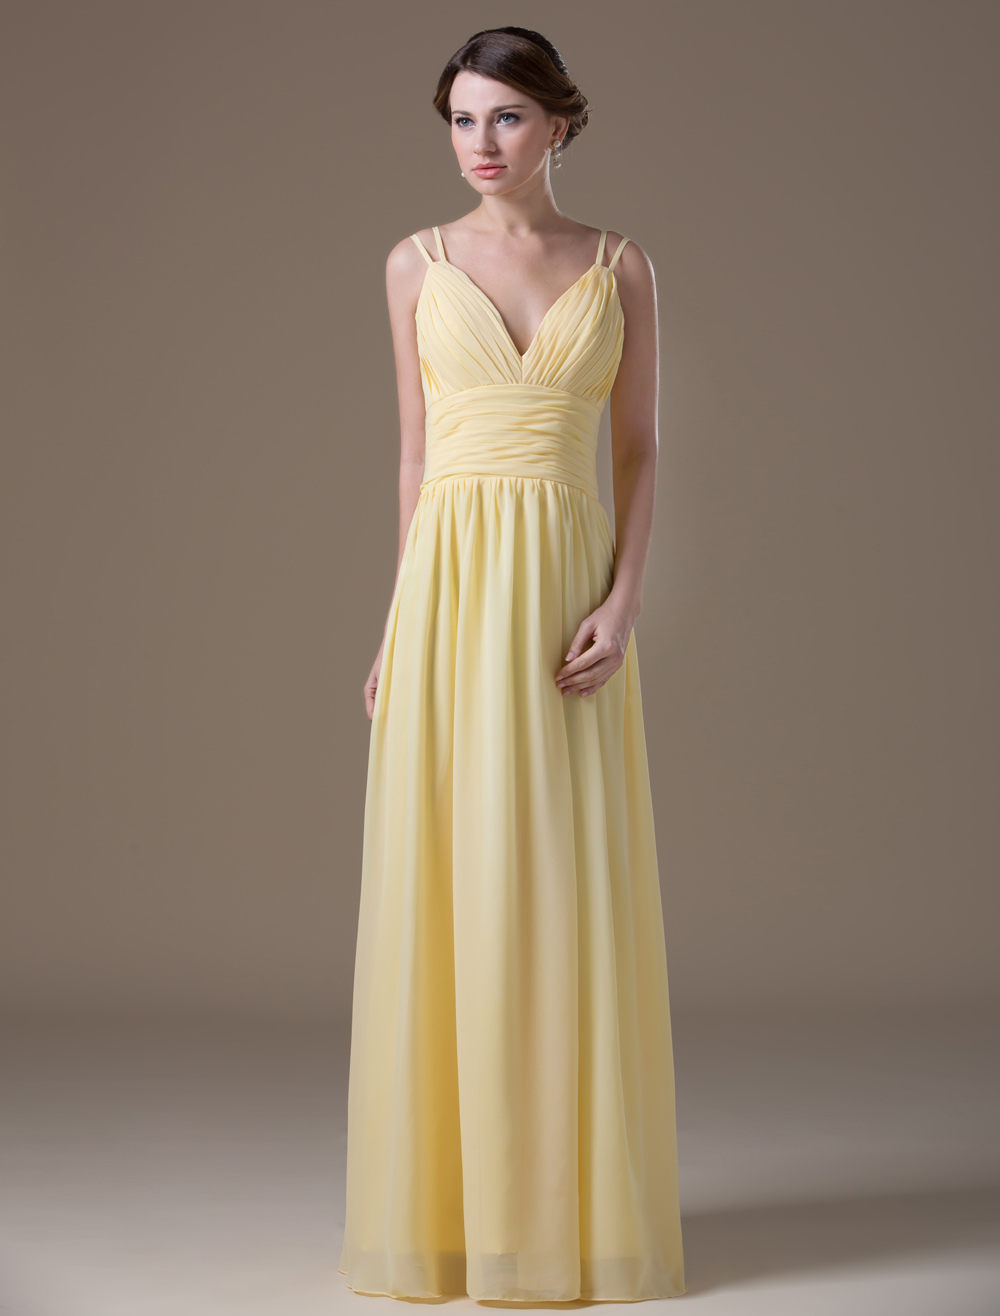 Princess Silhouette Yellow Chiffon Maternity Bridesmaid Dress with V-Neck Empire Waist